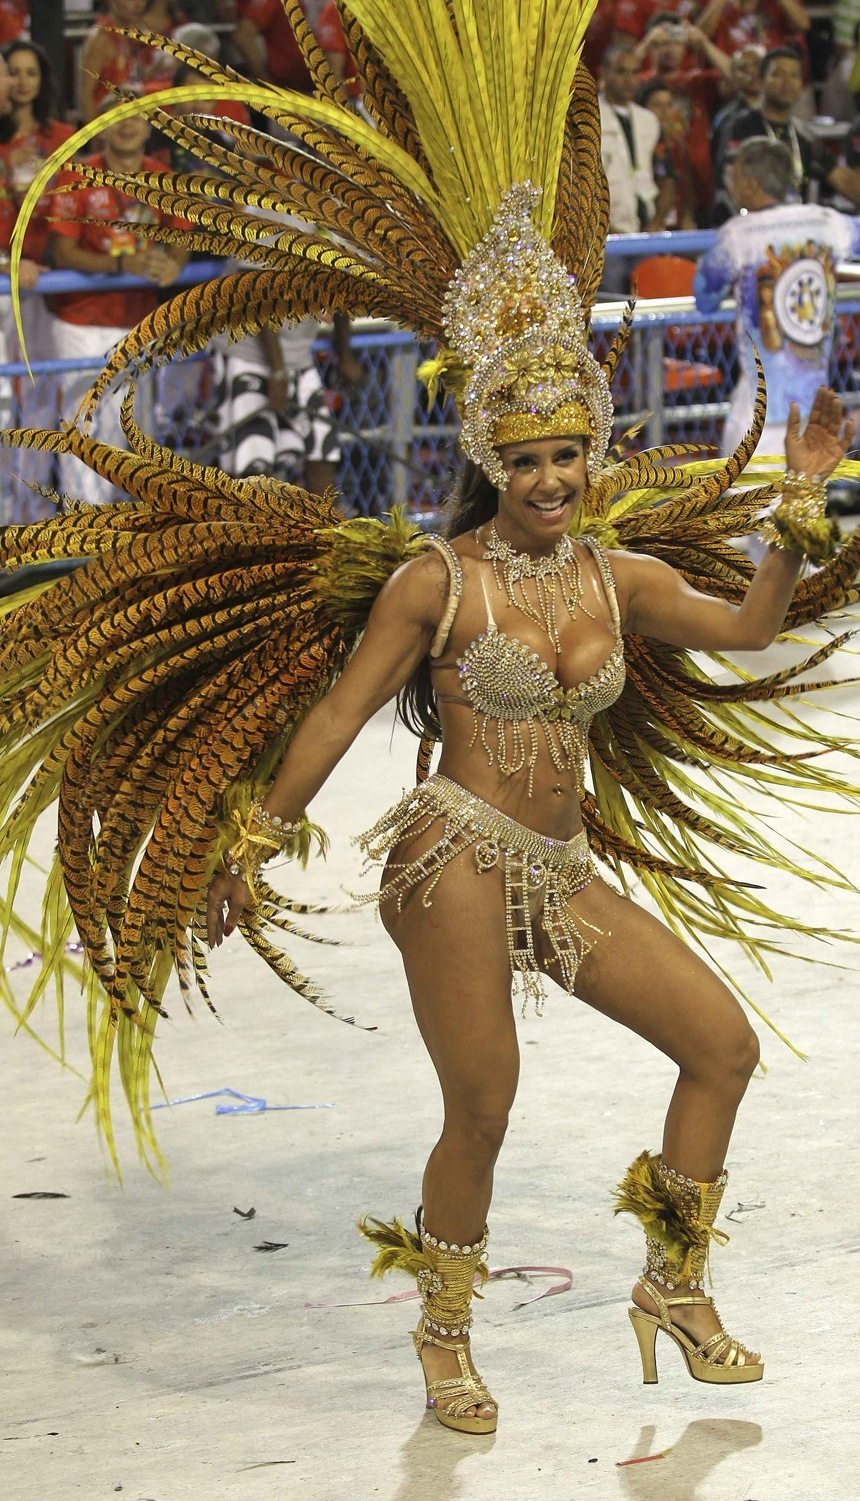 A reveller of the Vila Isabel samba school participates in the annual Carnival parade in Rio de Janeiro's Sambadrome March 6, 2011. REUTERS/Sergio Moraes.